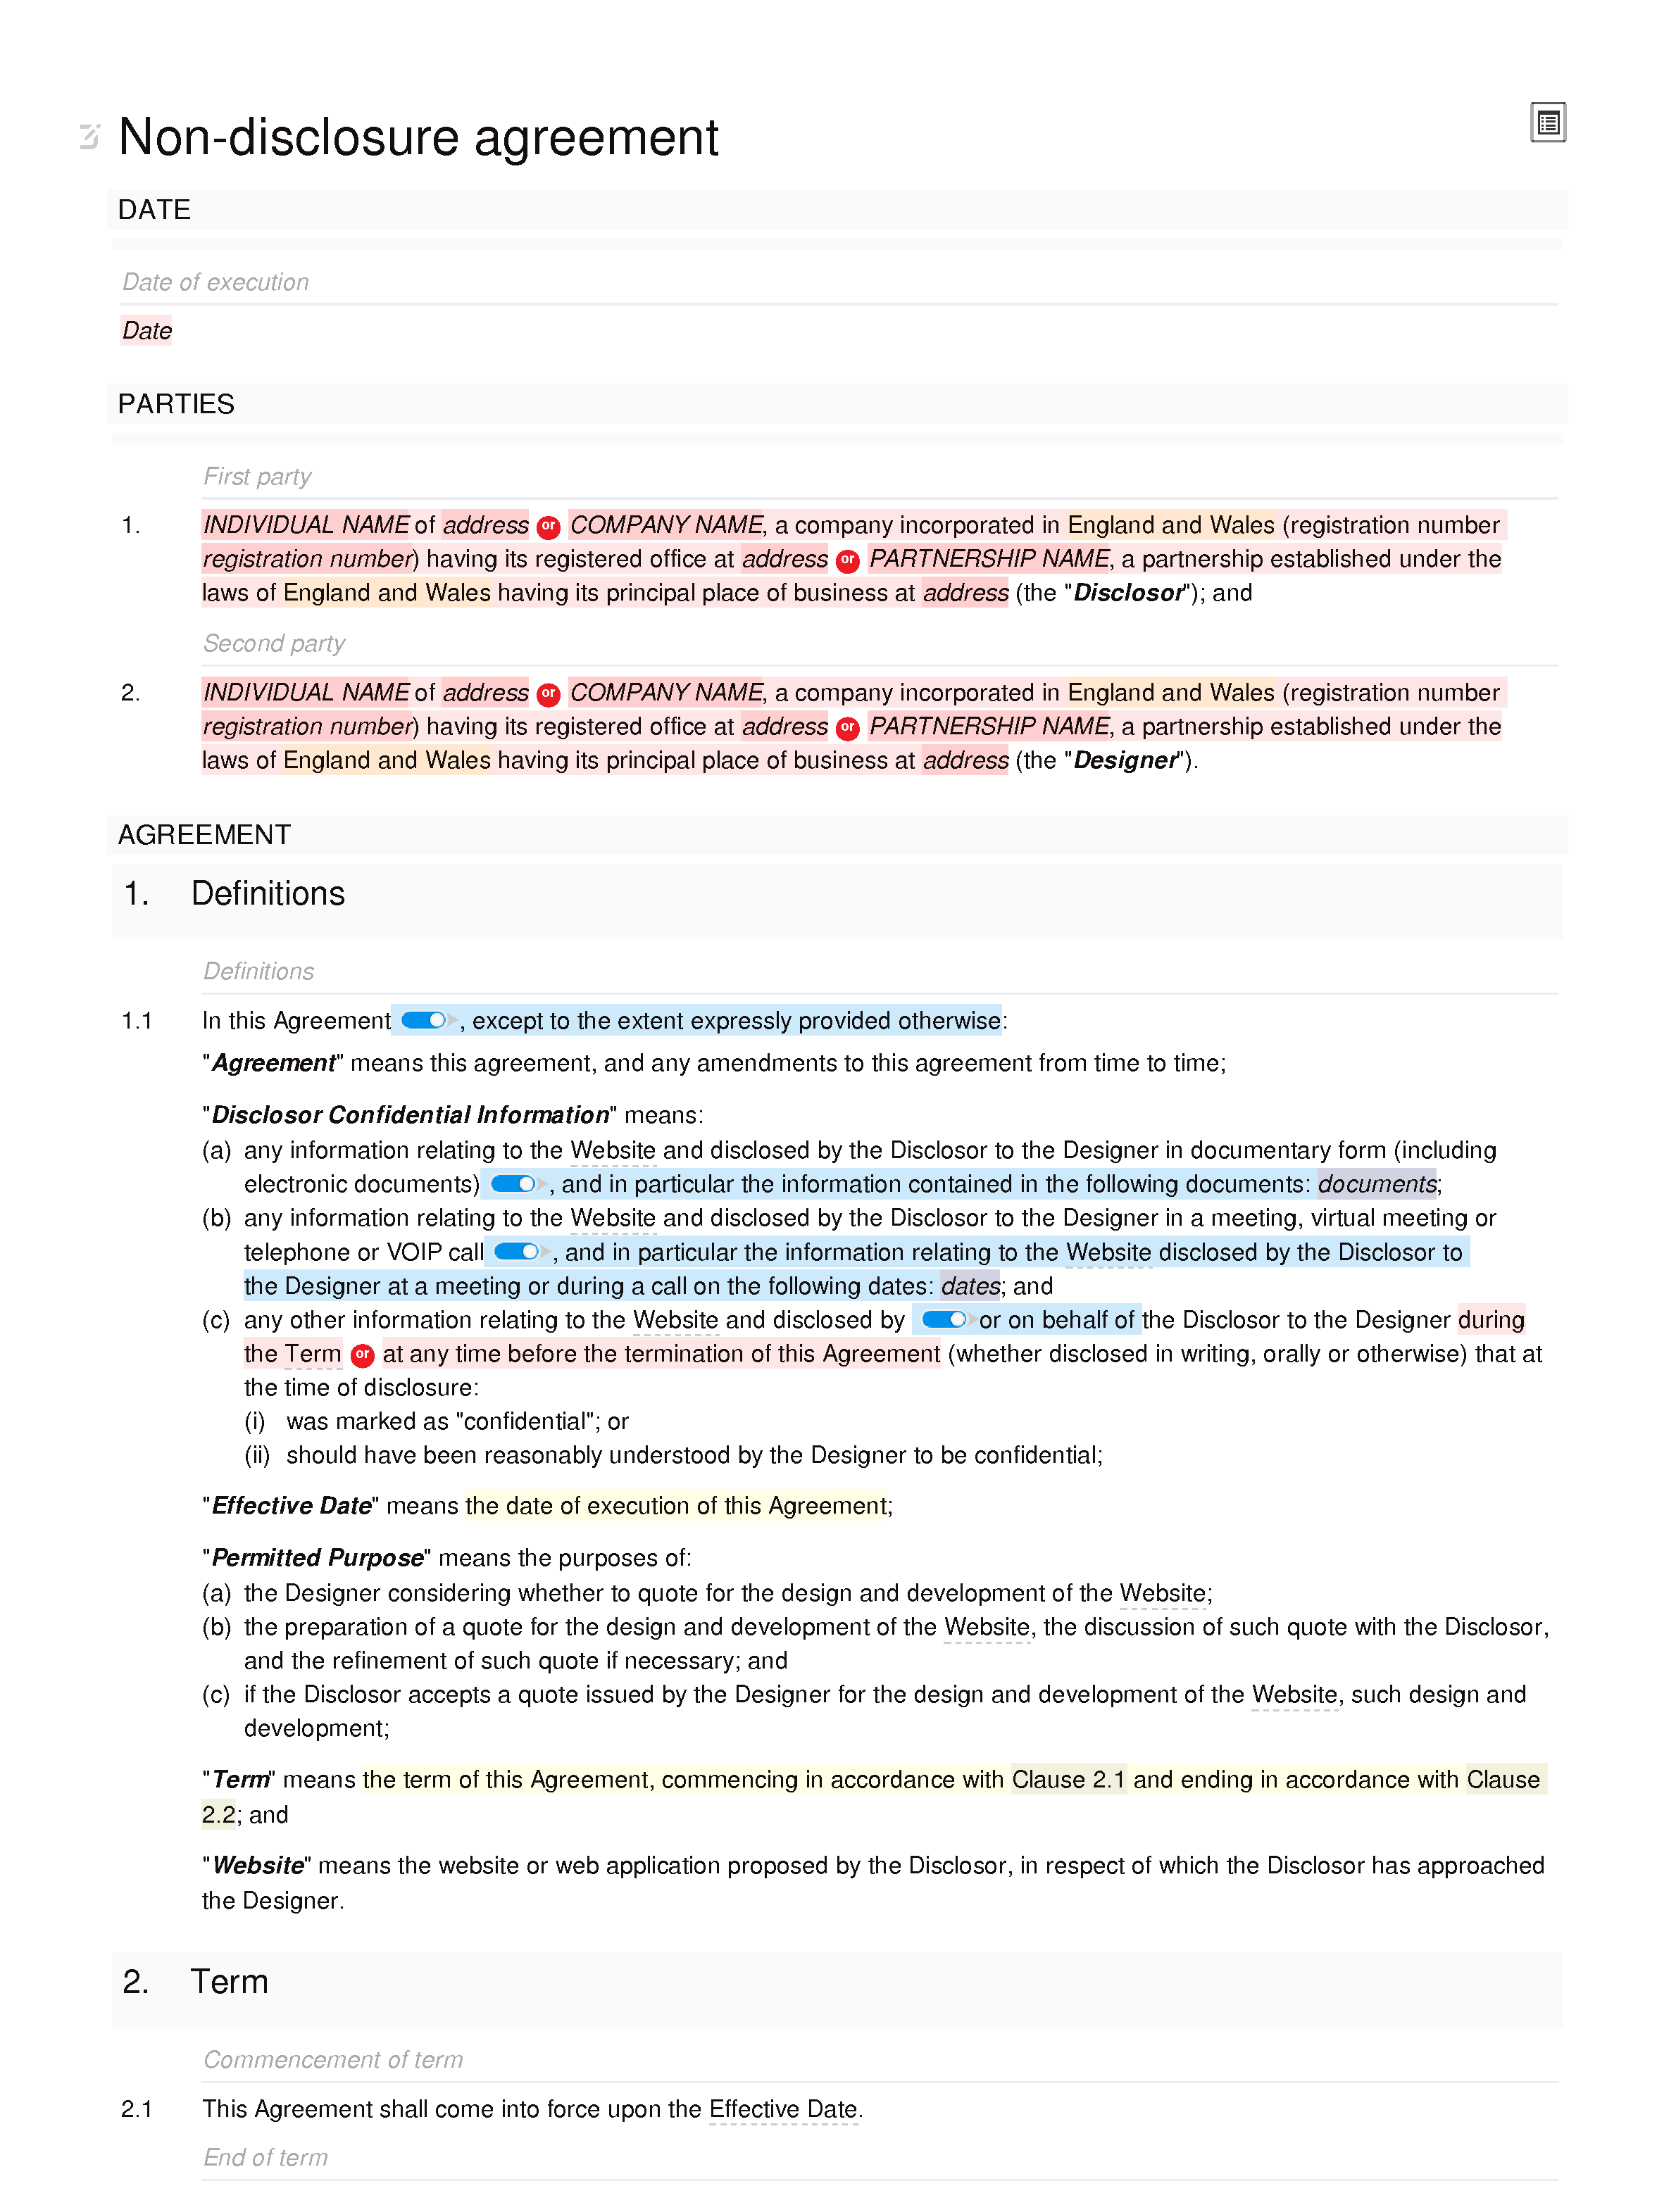 Non-disclosure agreement (web design) document editor preview